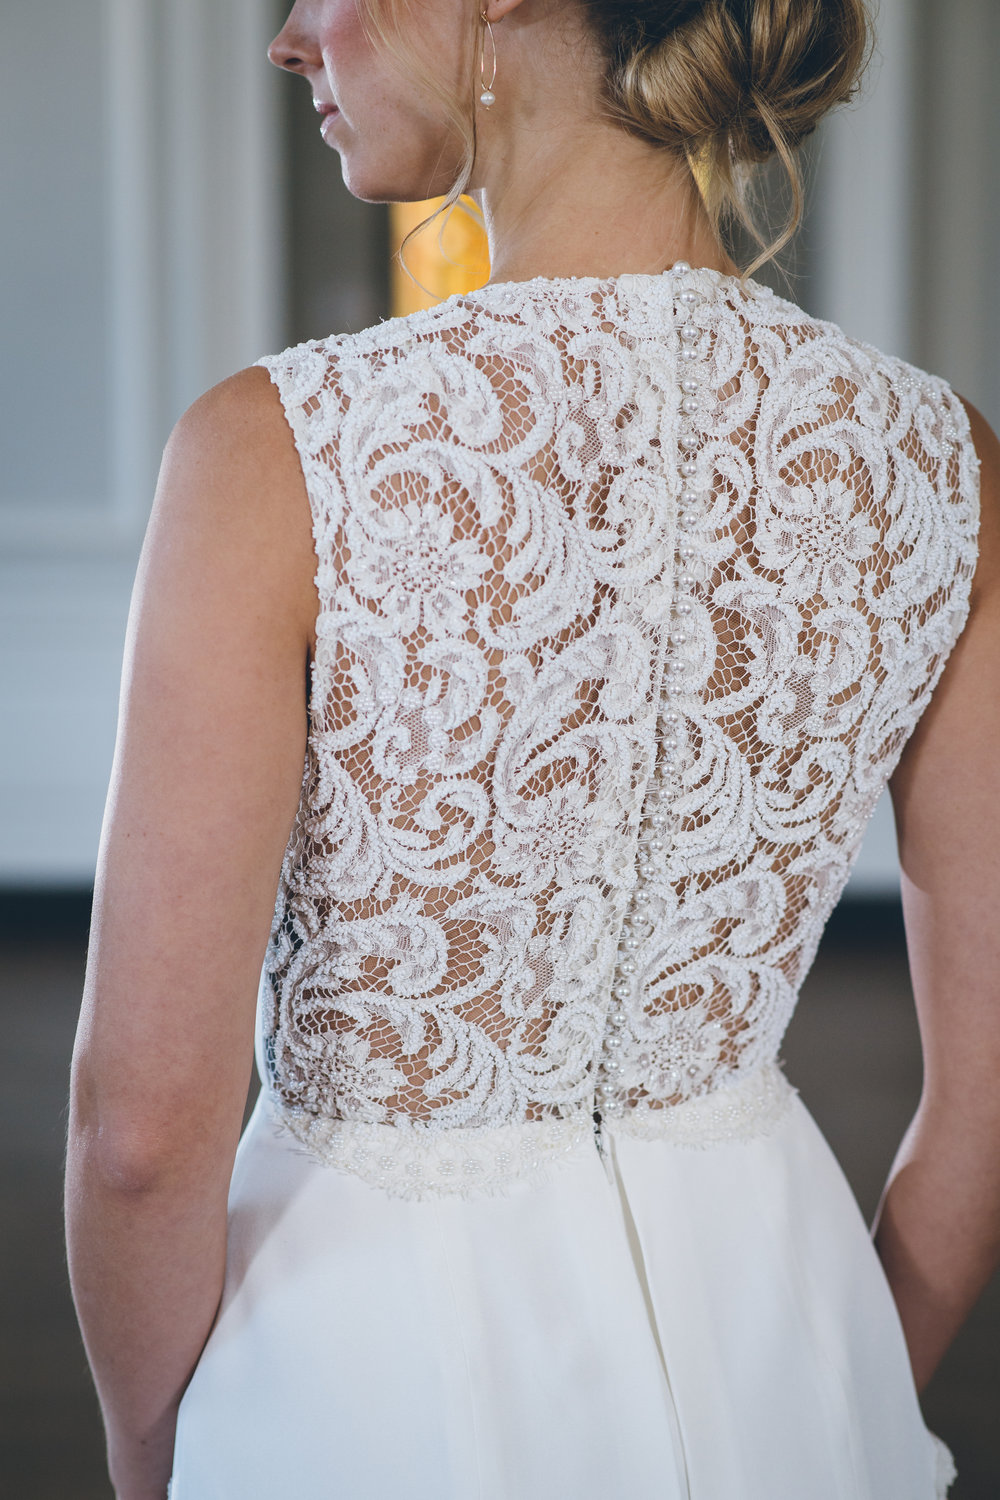 Detailed Lace Back Wedding Gown Chicago Wedding Ed and Aileen Photography